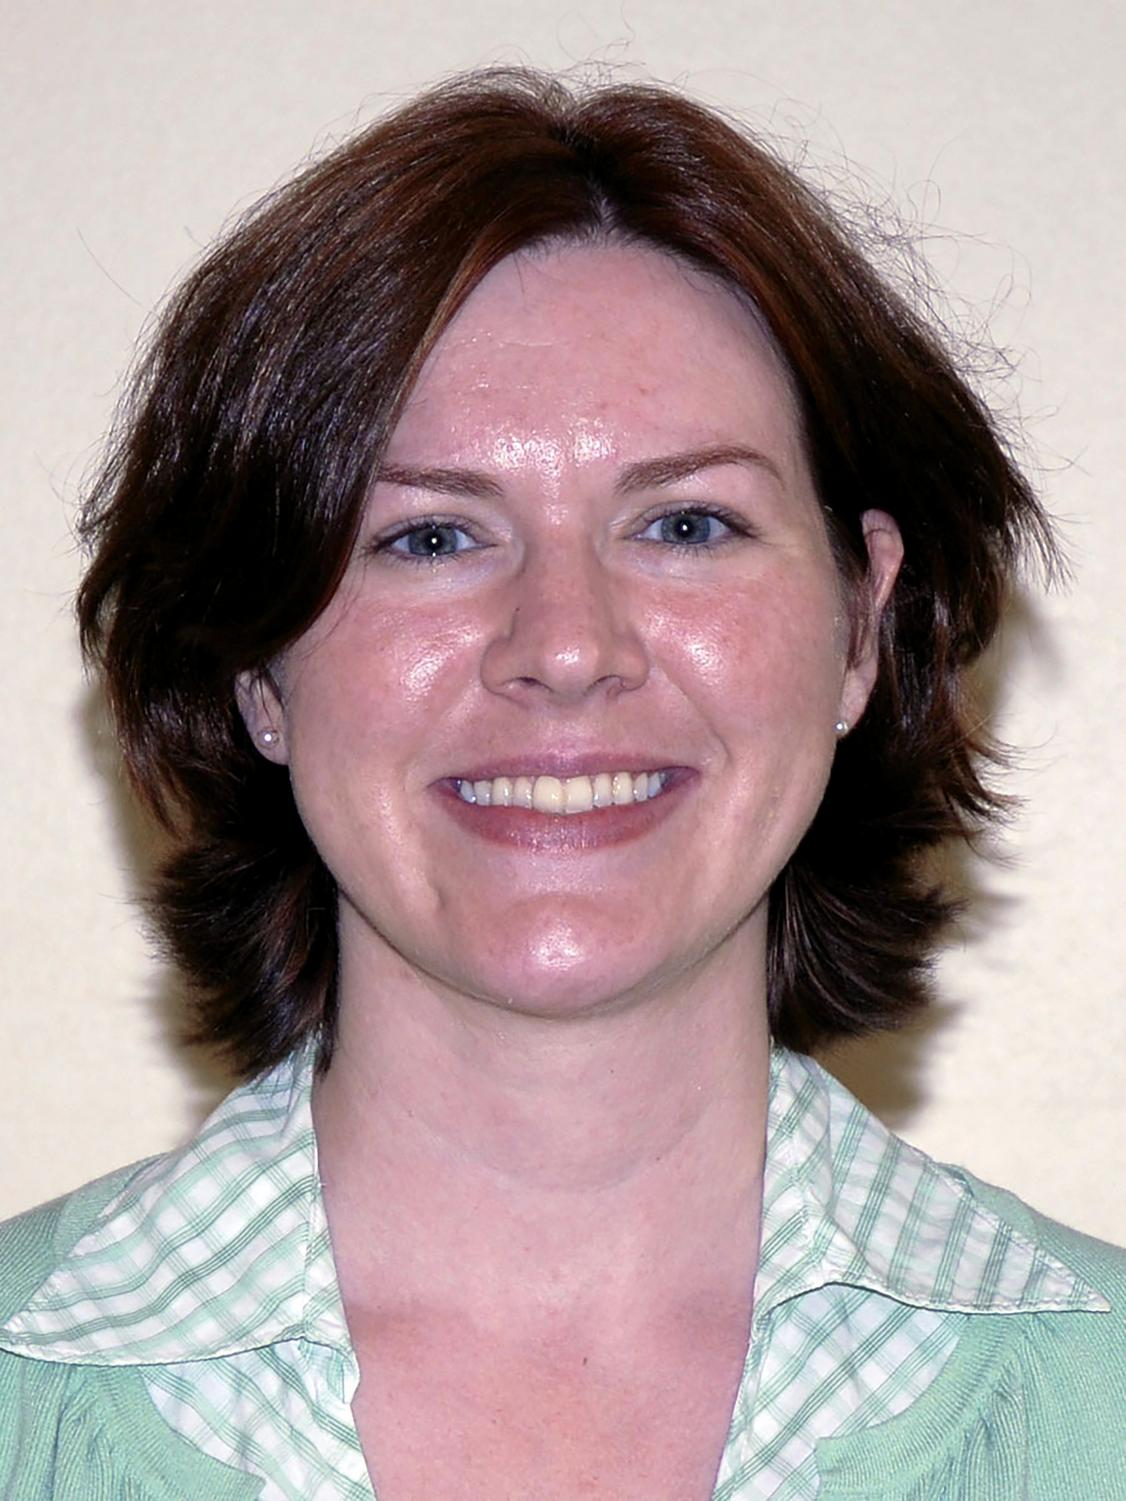 As a school psychologist, Hill-Chapman has been able to study and carry out research on interesting yet personal topics.